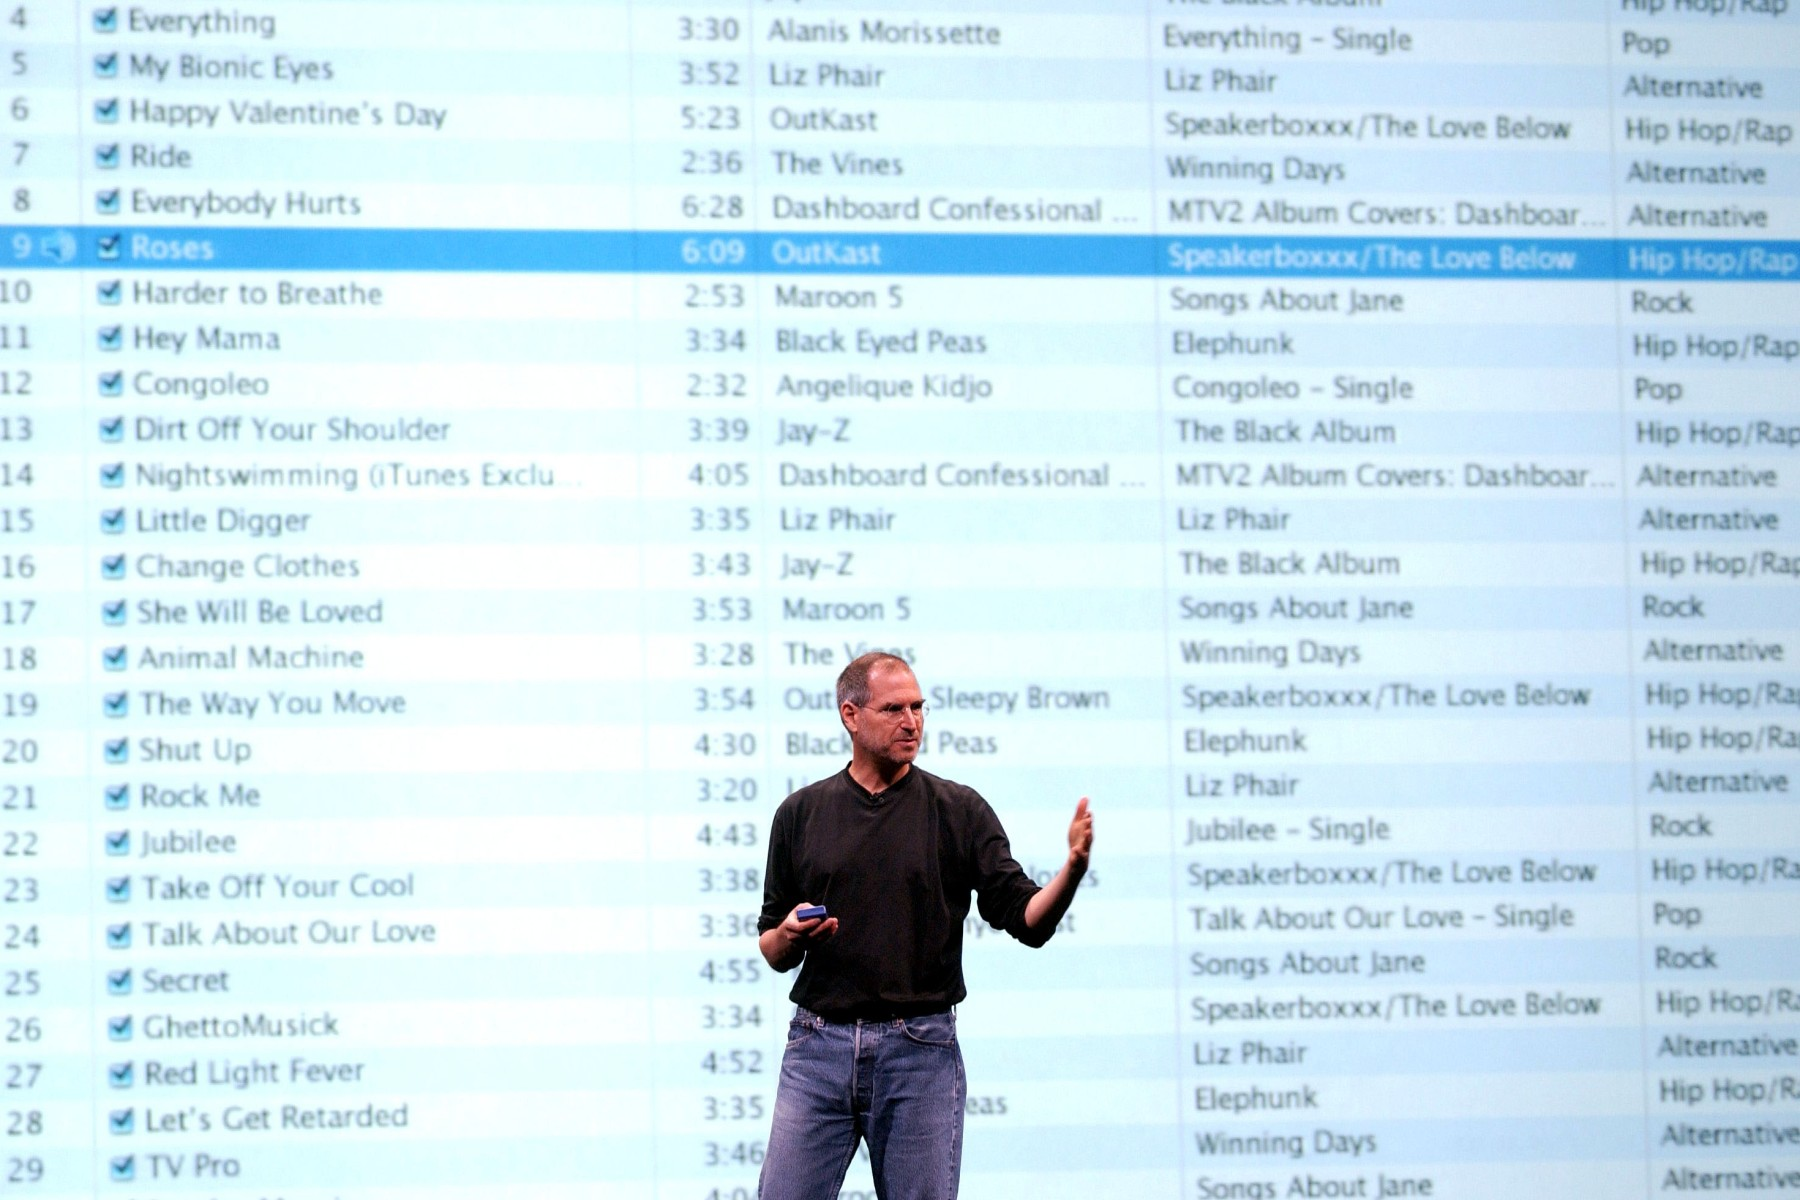 STEVE JOBS, CEO OF APPLEAPPLE LAUNCHING ITUNES ONLINE MUSIC STORE IN THE UK, FRANCE AND GERMANY, OLD BILLINGSGATE FISH MARKET, LONDON, BRITAIN - 15 JUN 2004